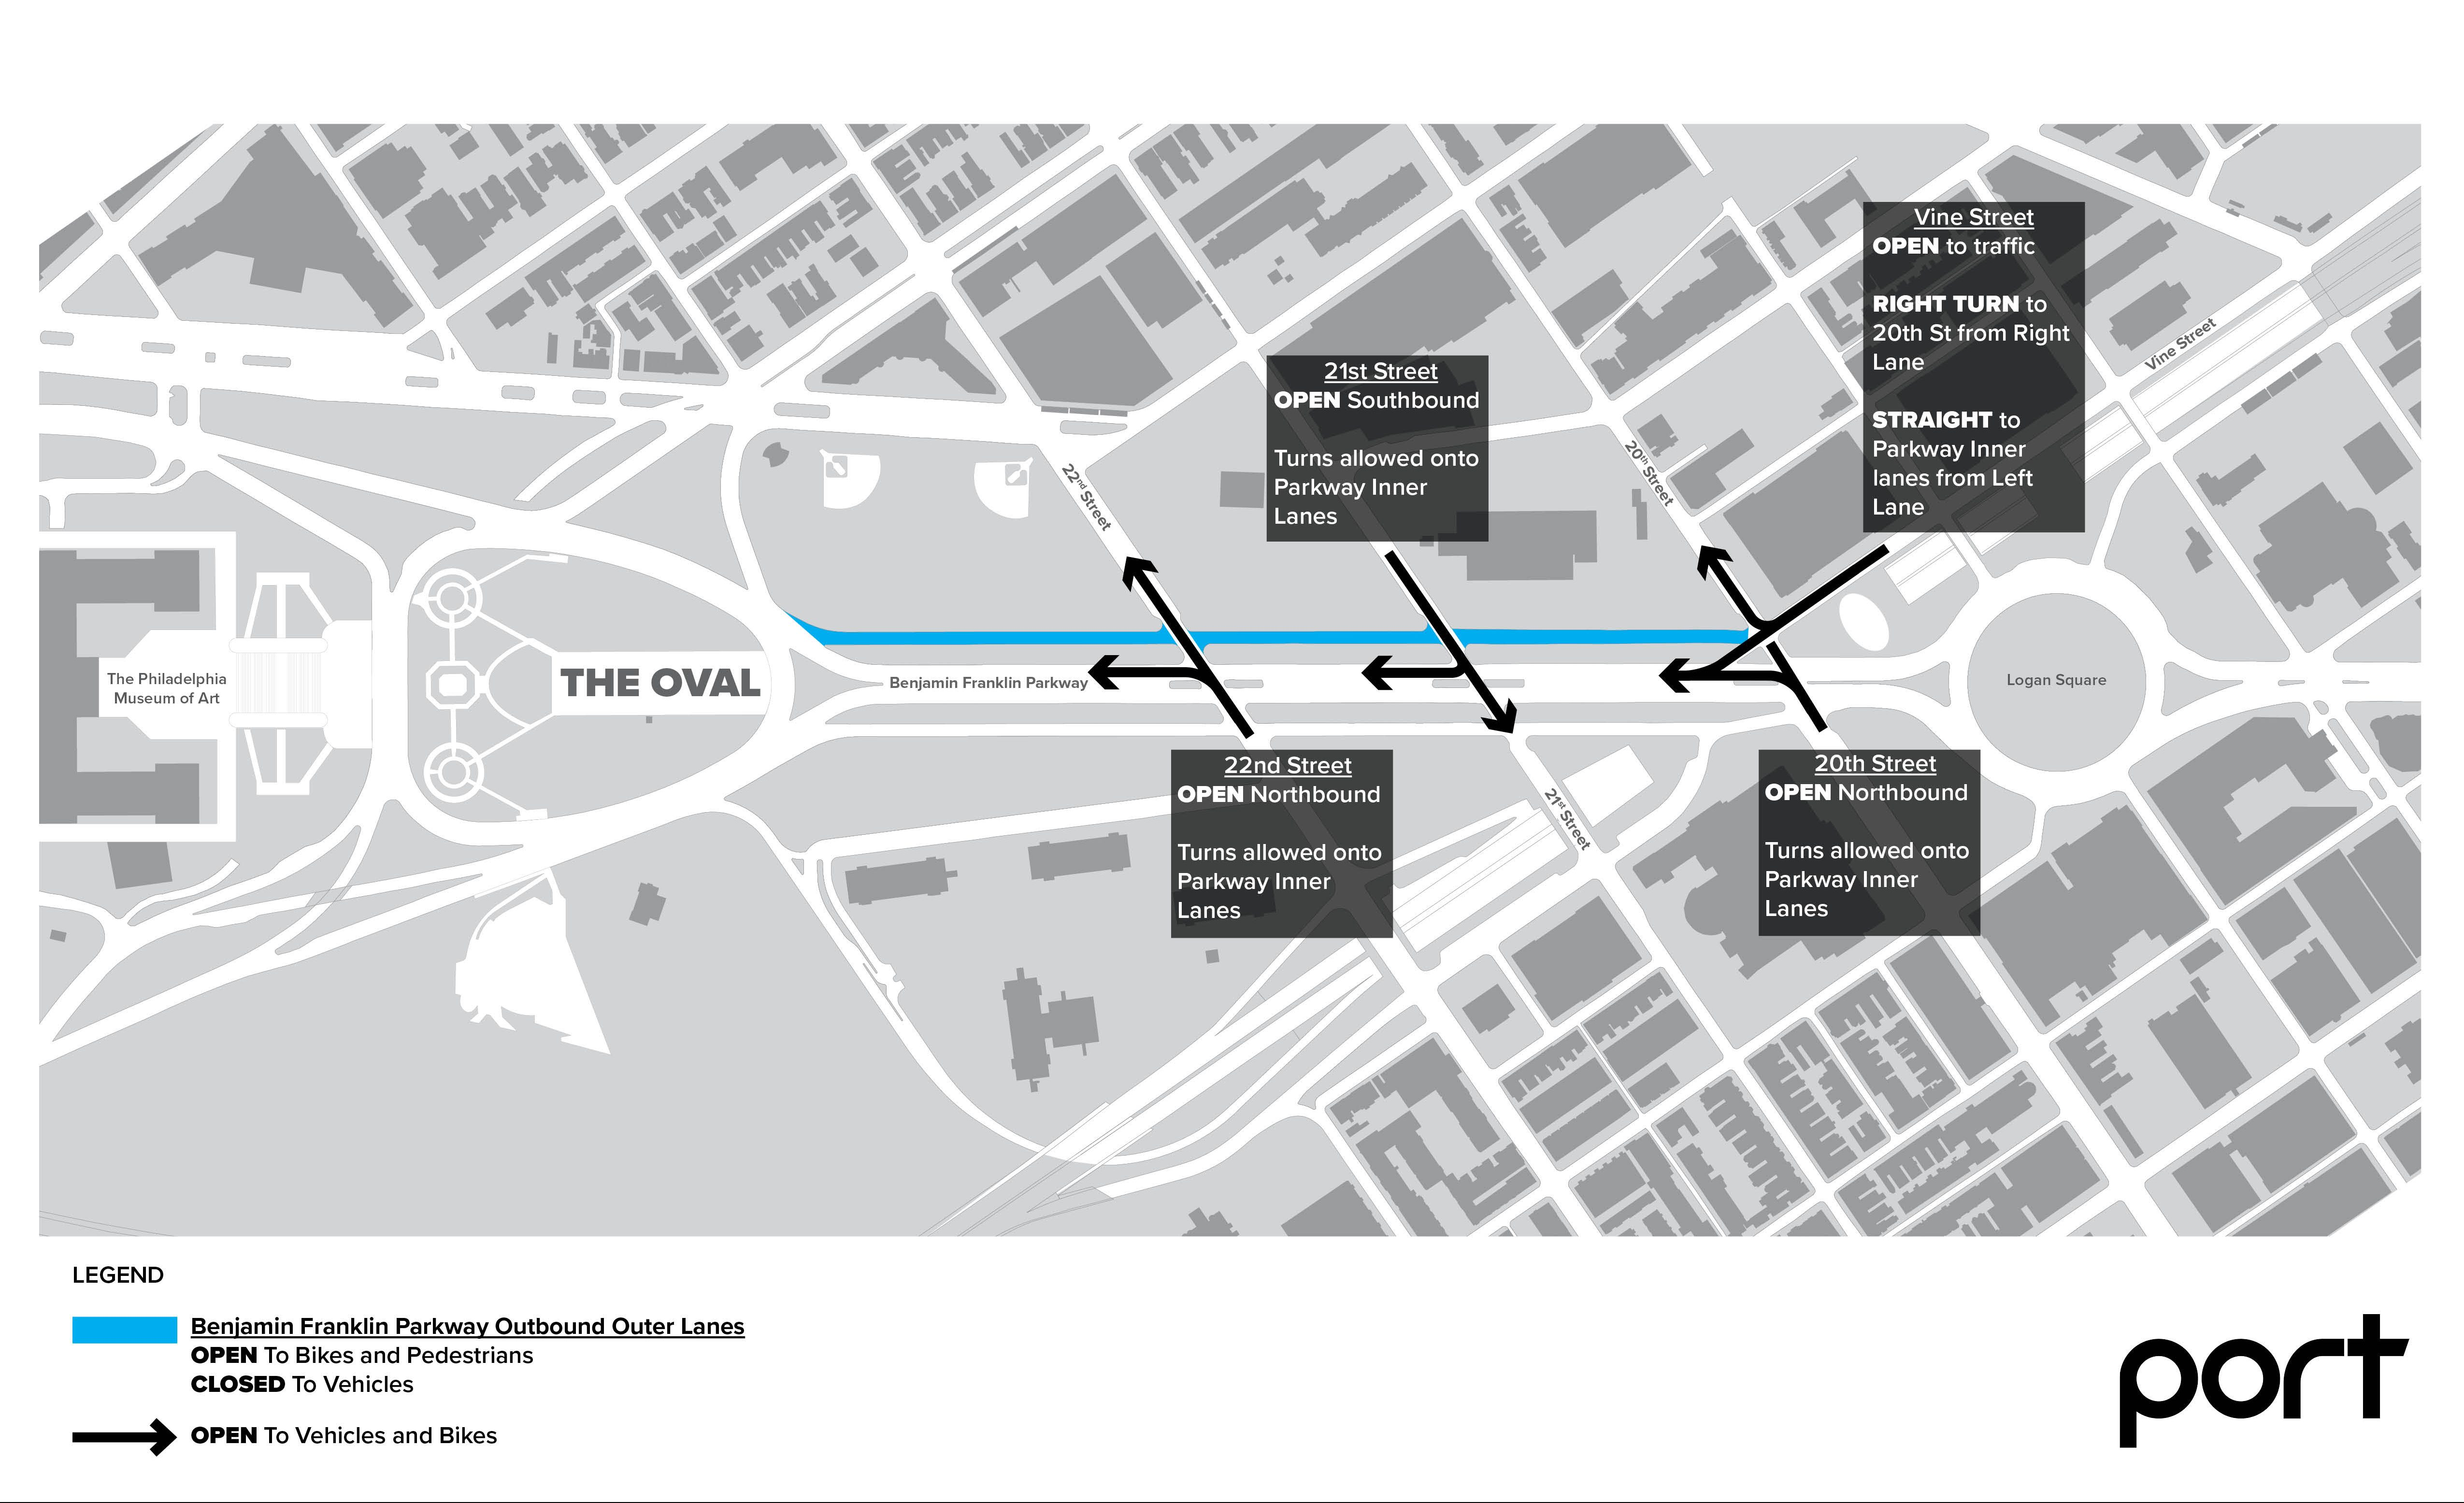 The Oval+ 2018 will bring road closures to three blocks of the Parkway's outermost northern lanes.